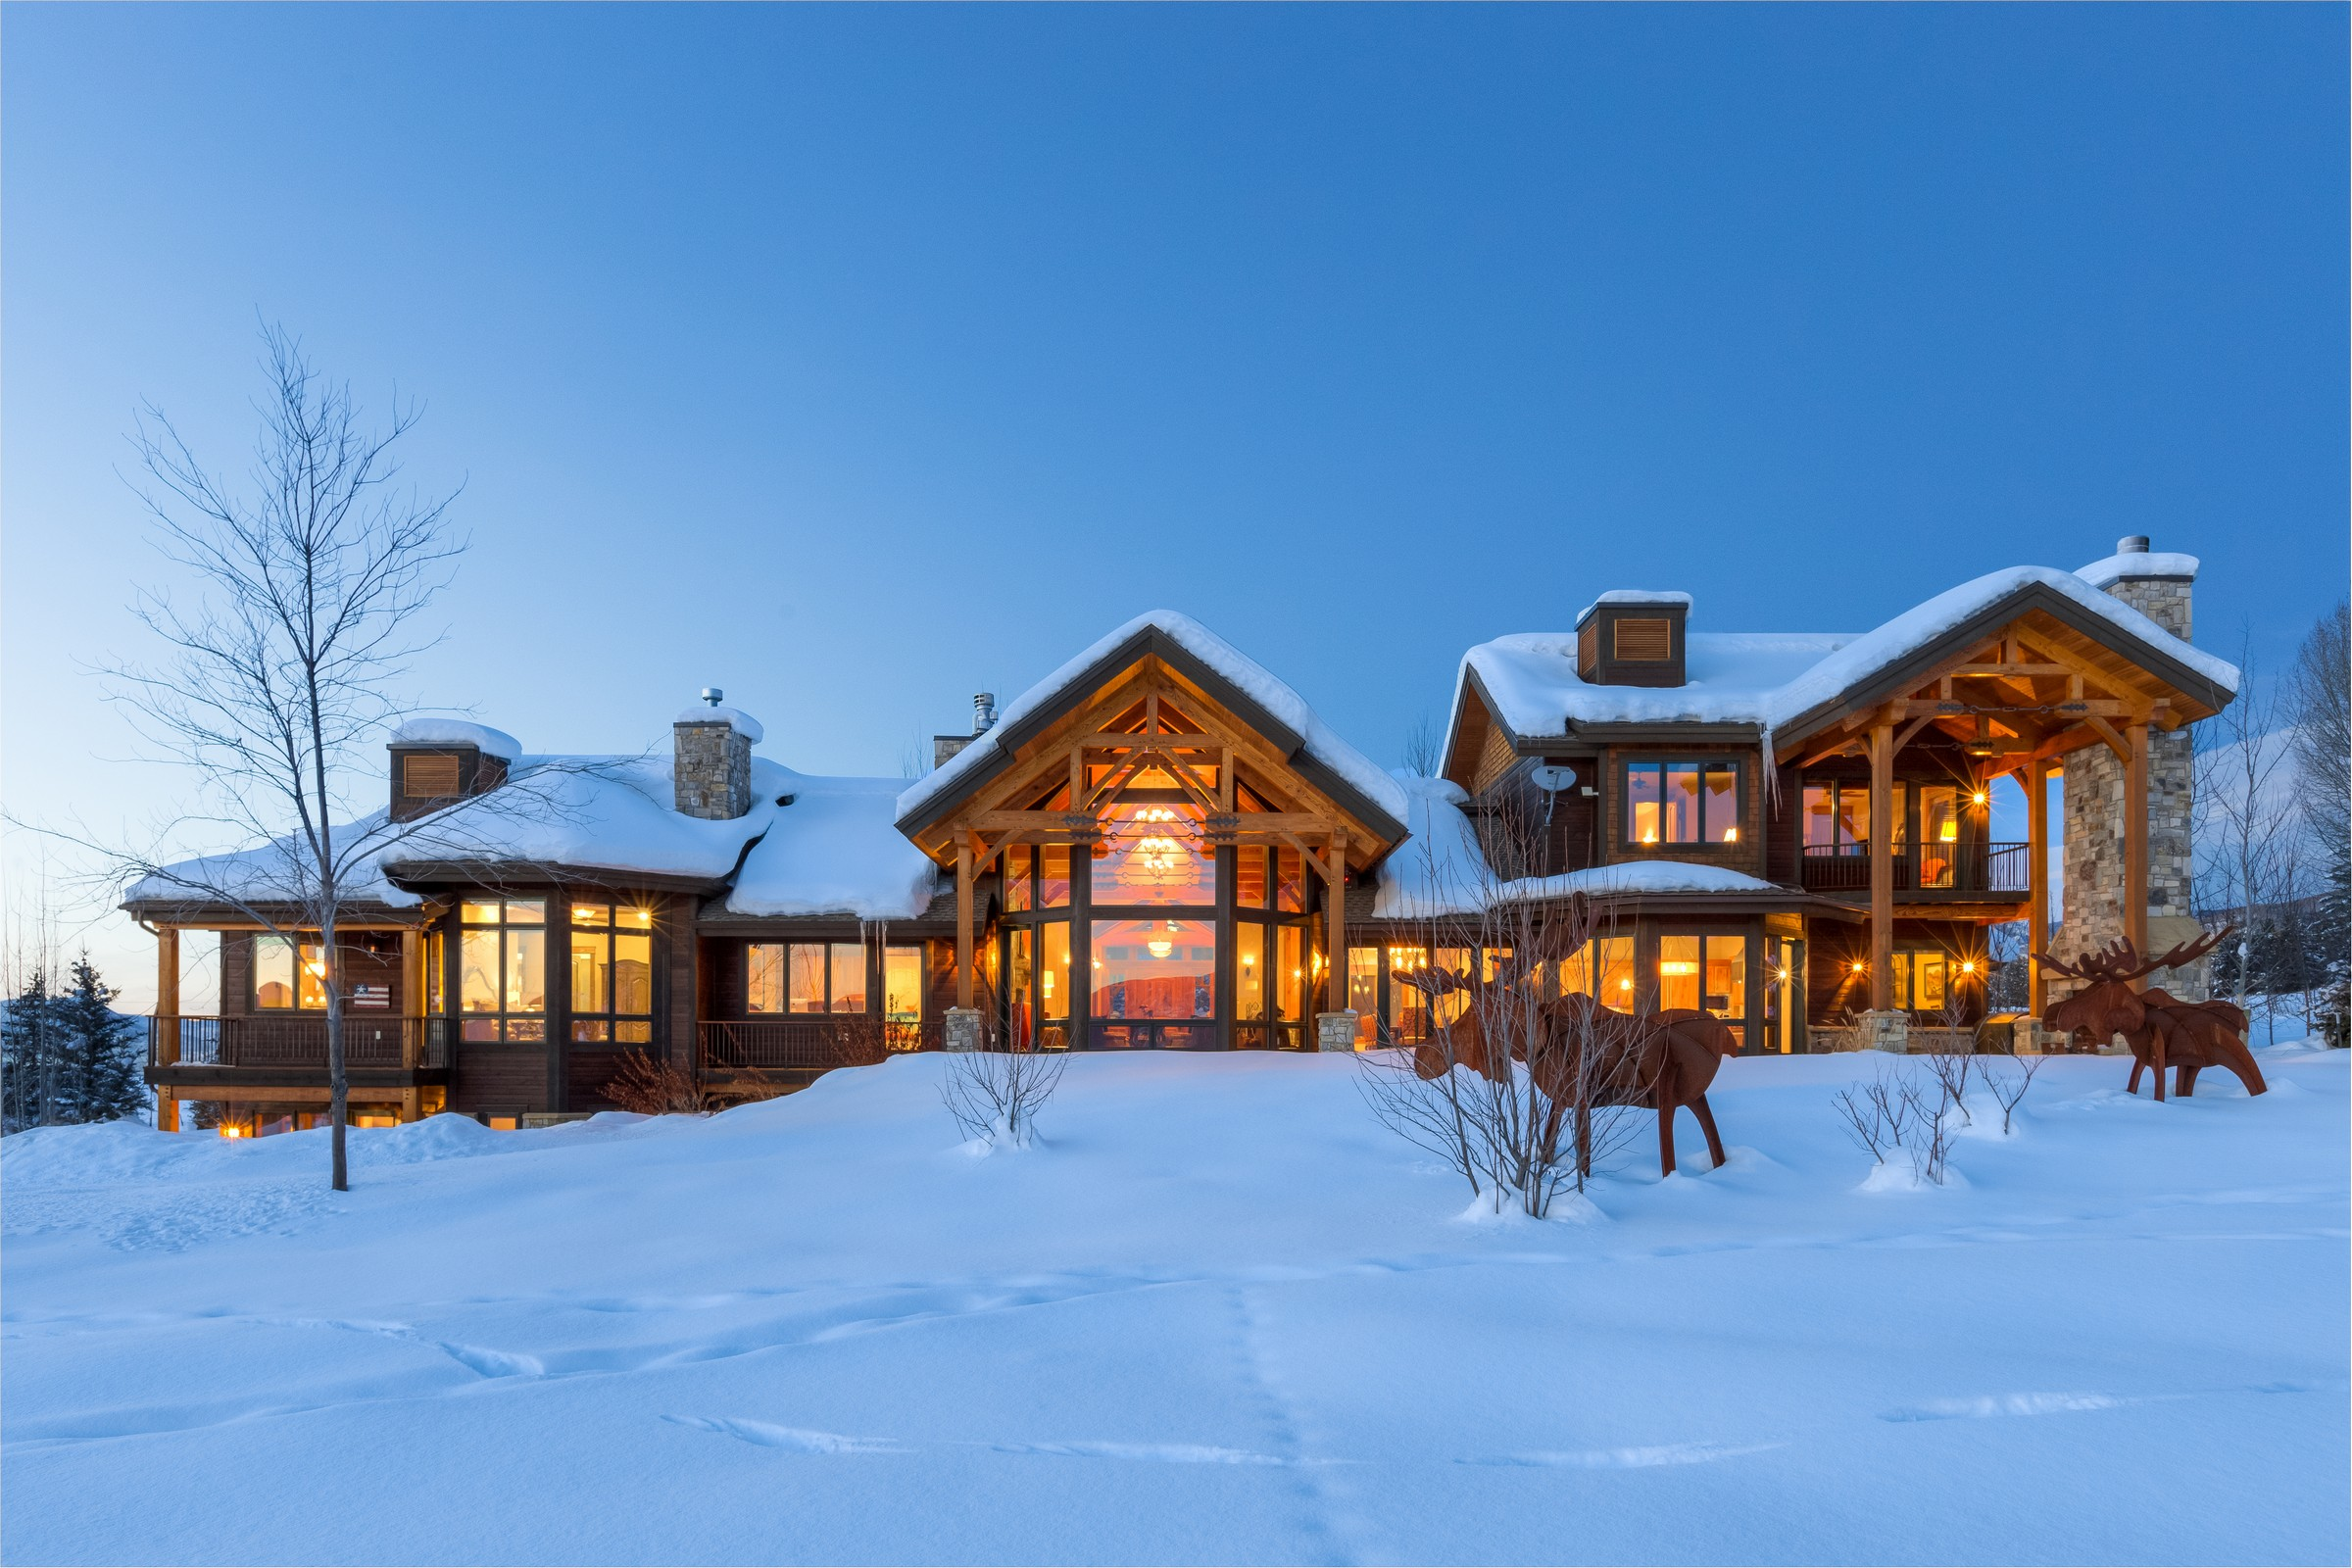 Single Family Home for Sale at Eagles View Home 1055 Anglers Drive Steamboat Springs, Colorado, 80487 United States